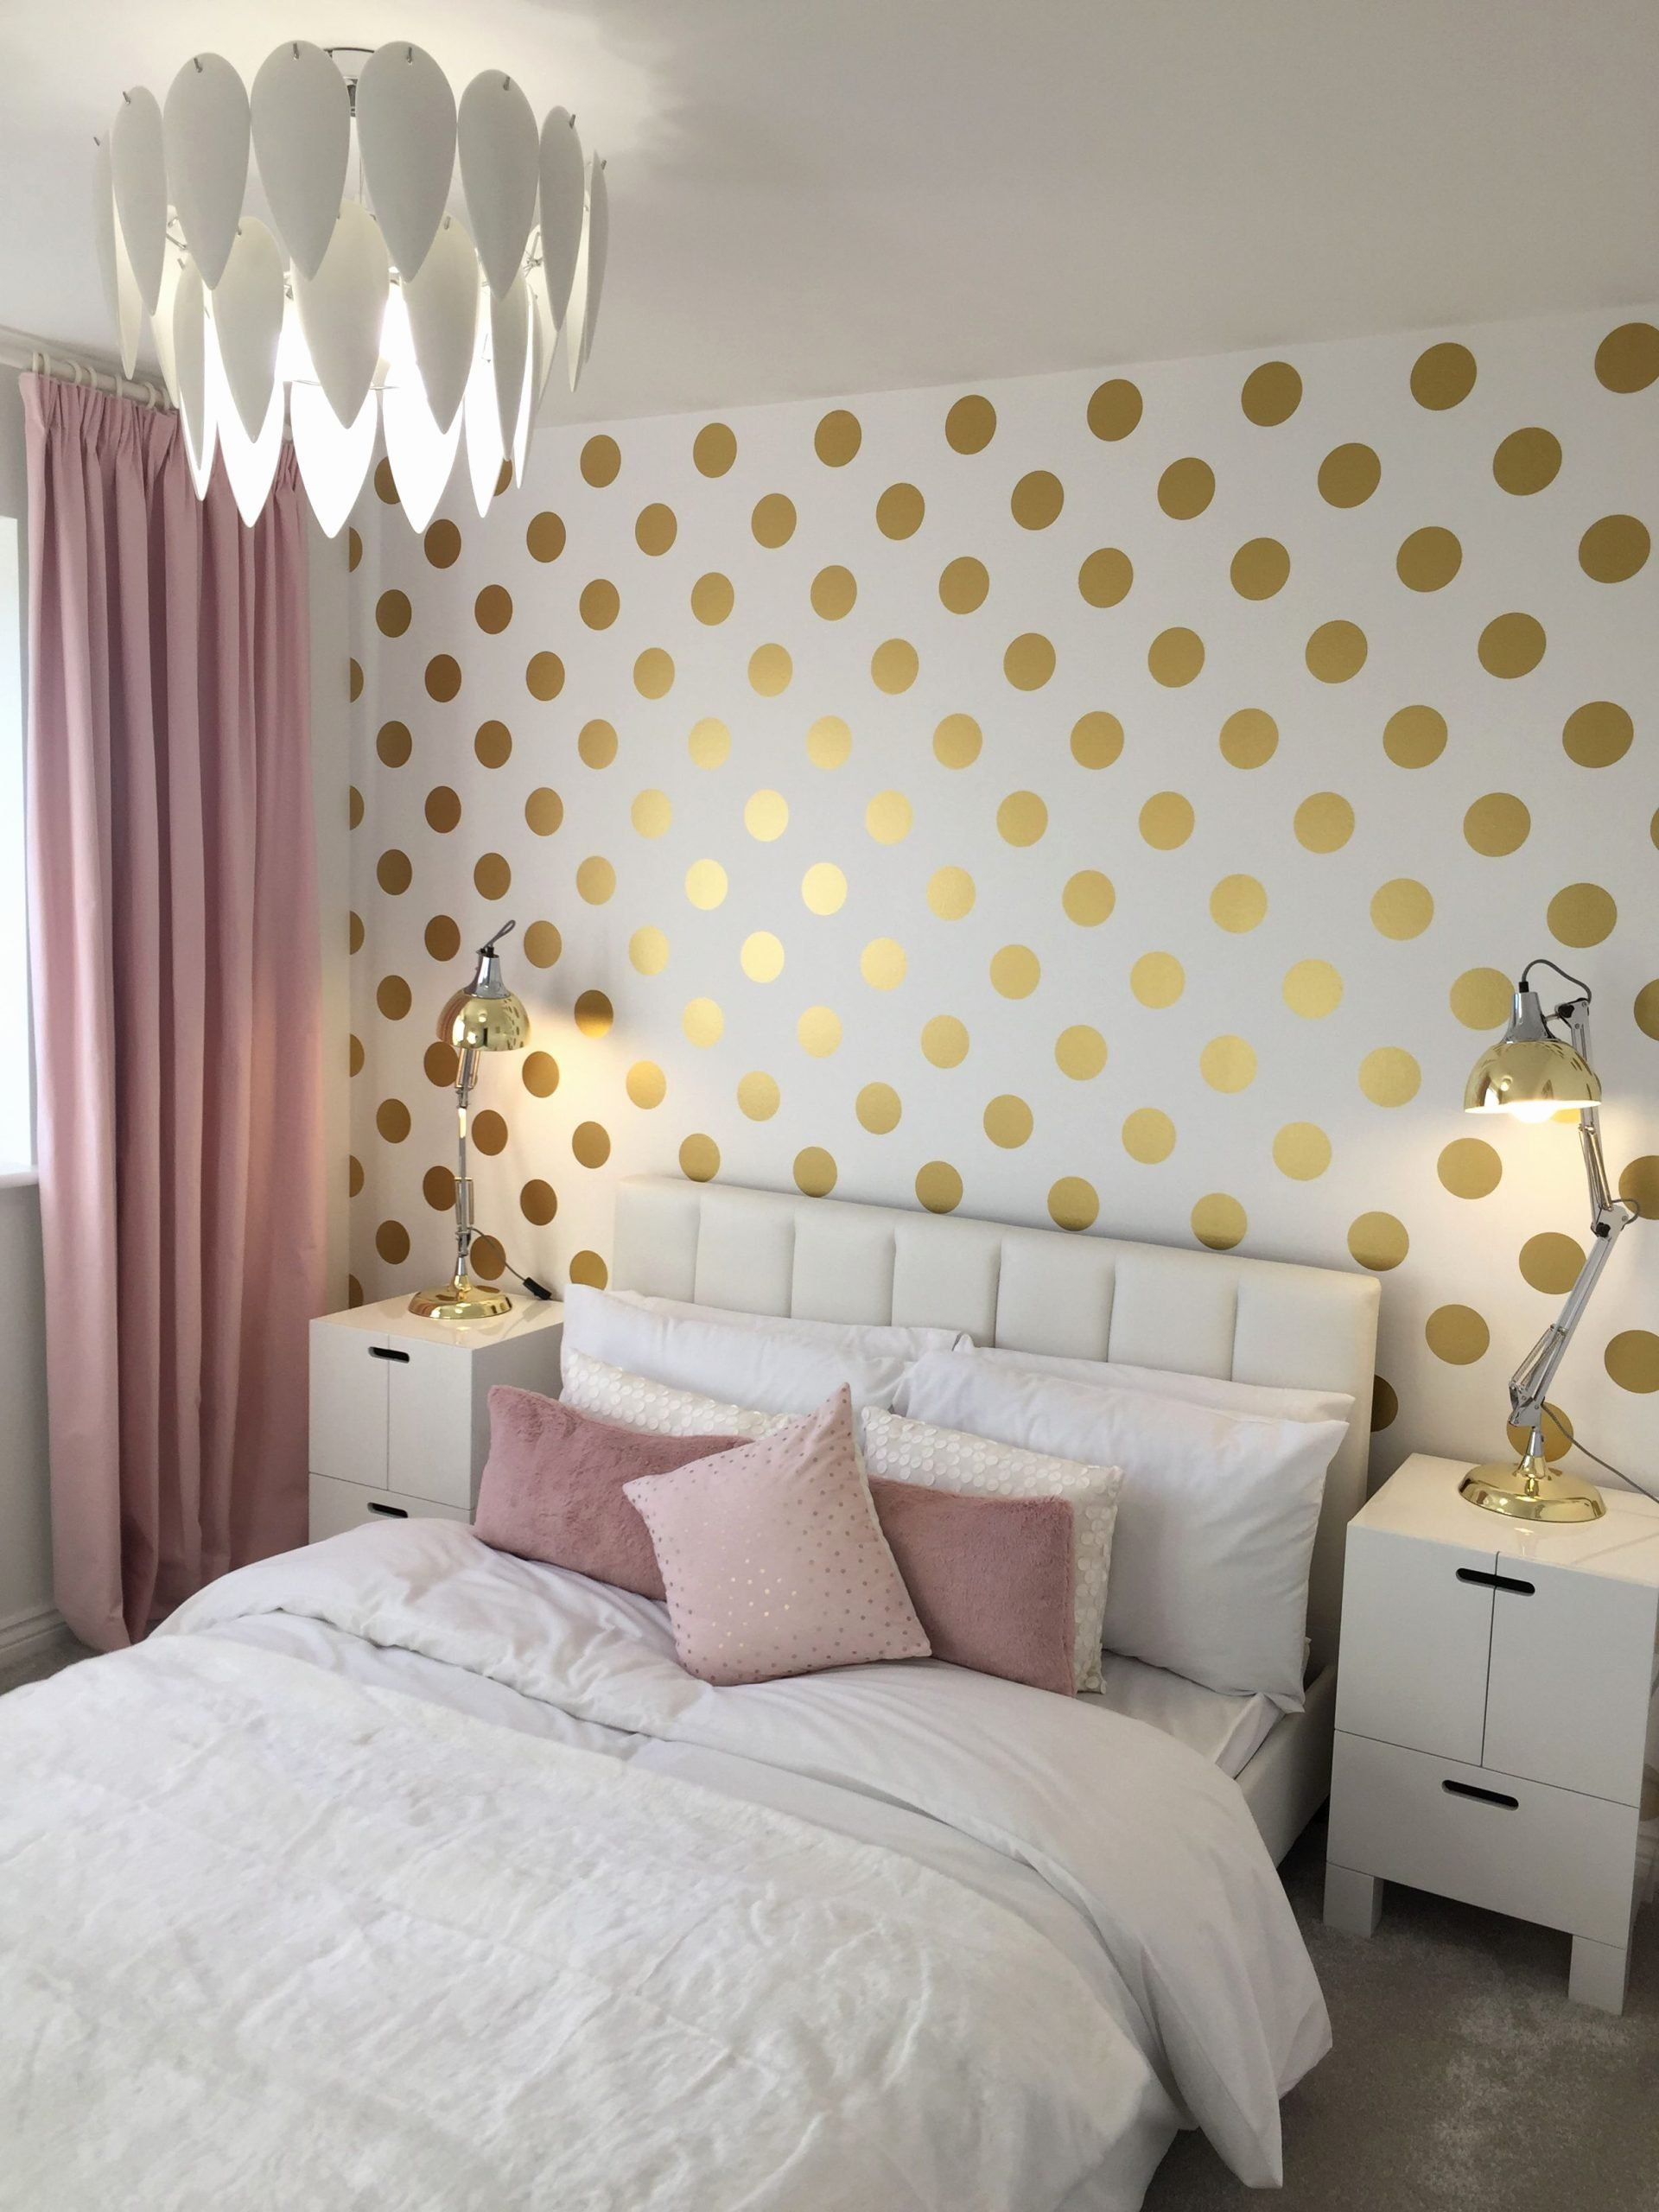 Polka Dot Bedroom Ideas Elegant Polka Dot Bedroom Pink And Gold Feature Wall In 2020 Girls Bedroom Green Girls Bedroom Wallpaper Pink Bedroom Decor